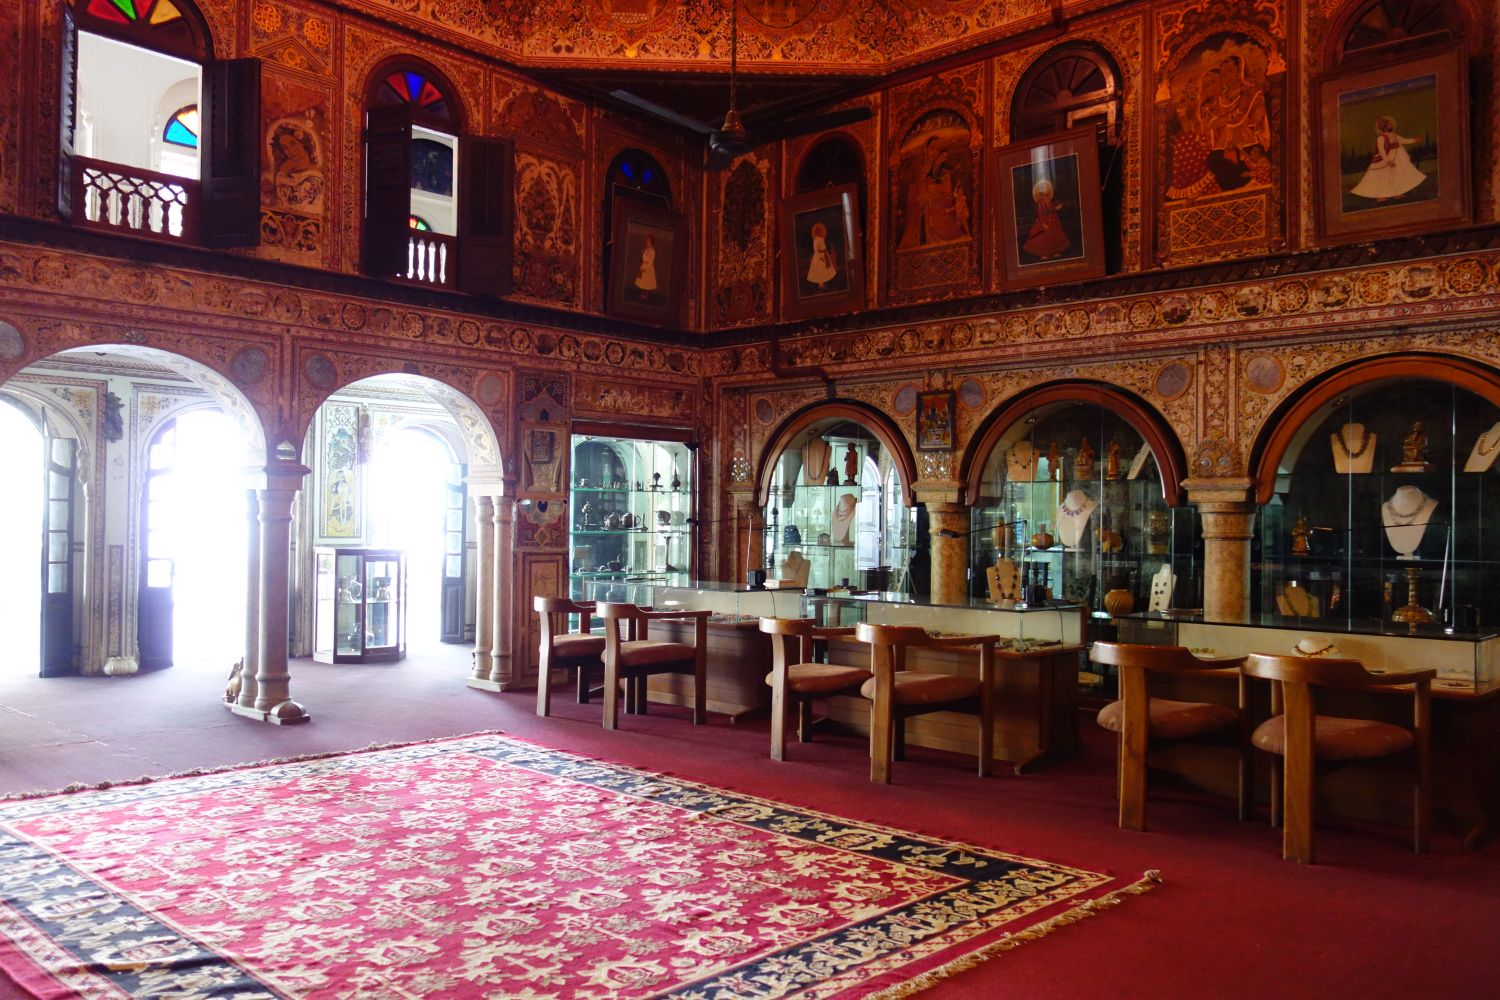 Jaipur | Royal Gems and Arts 1 | Haveli (noble house ) of the 17th century | Jewelery and antique | Jeweler of royal Rajasthan families | Santi Choudary owner | Photo sandrine cohen